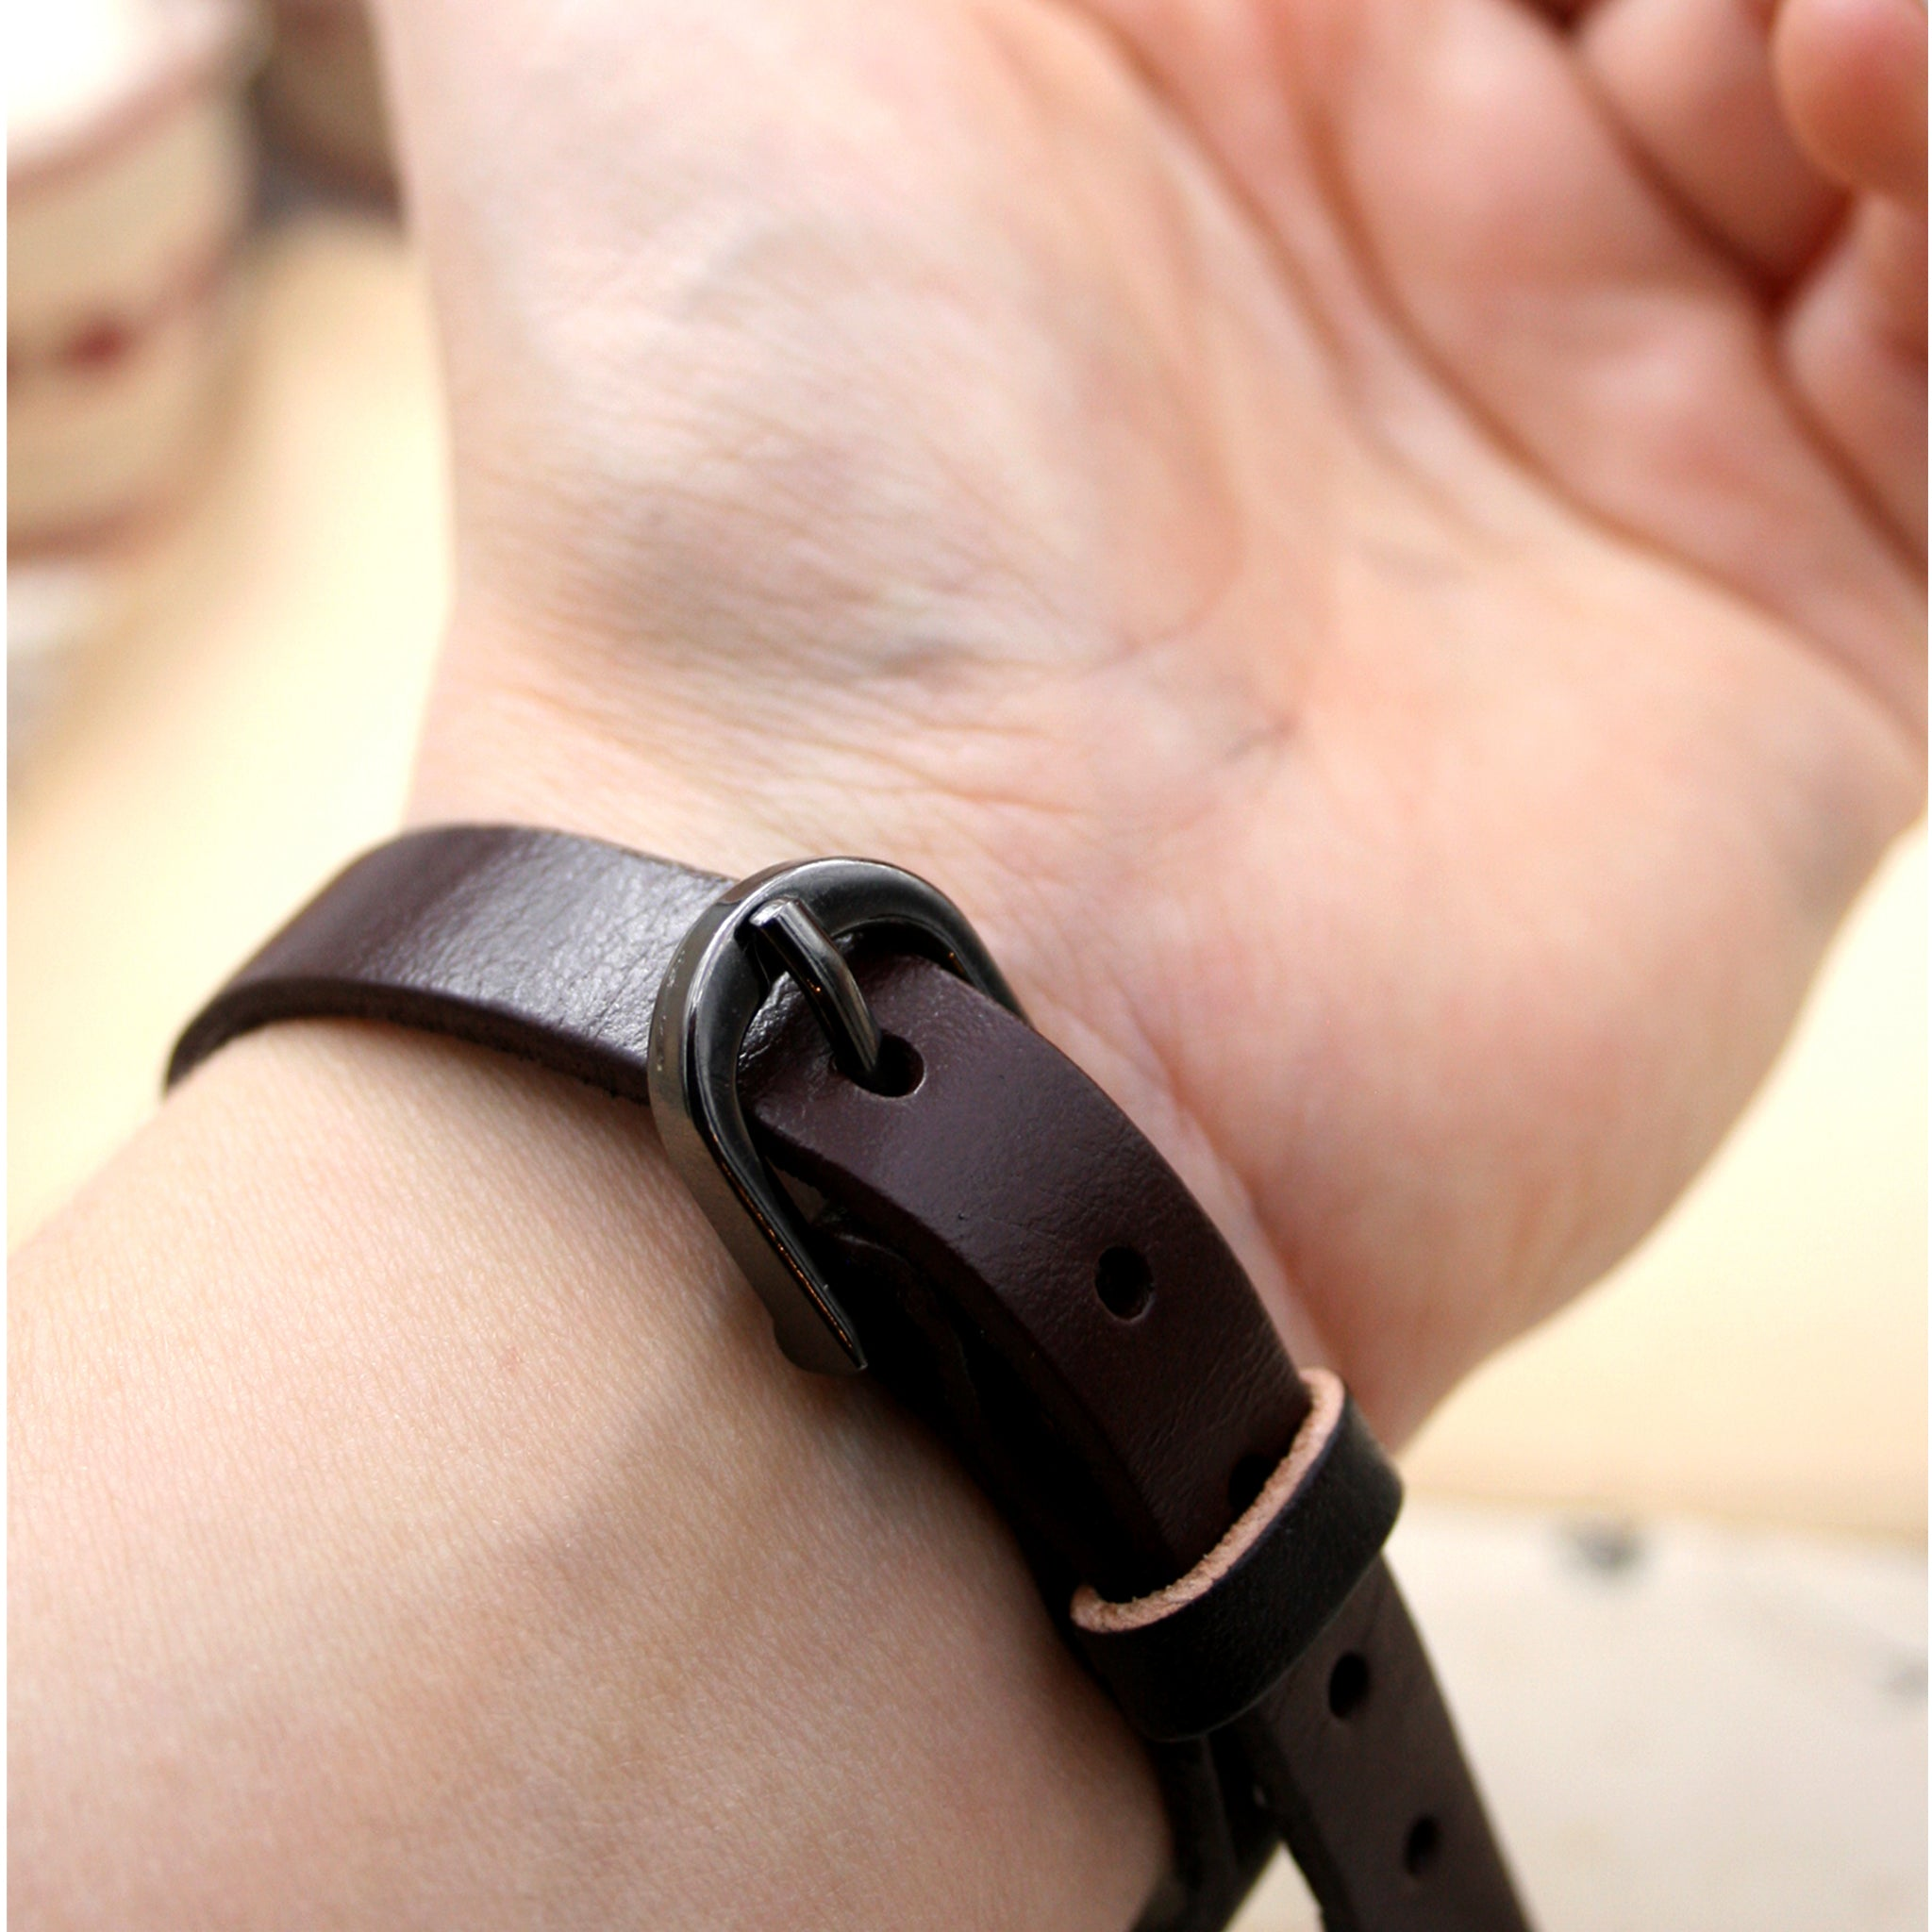 Worn on hand brown leather bracelet buckle